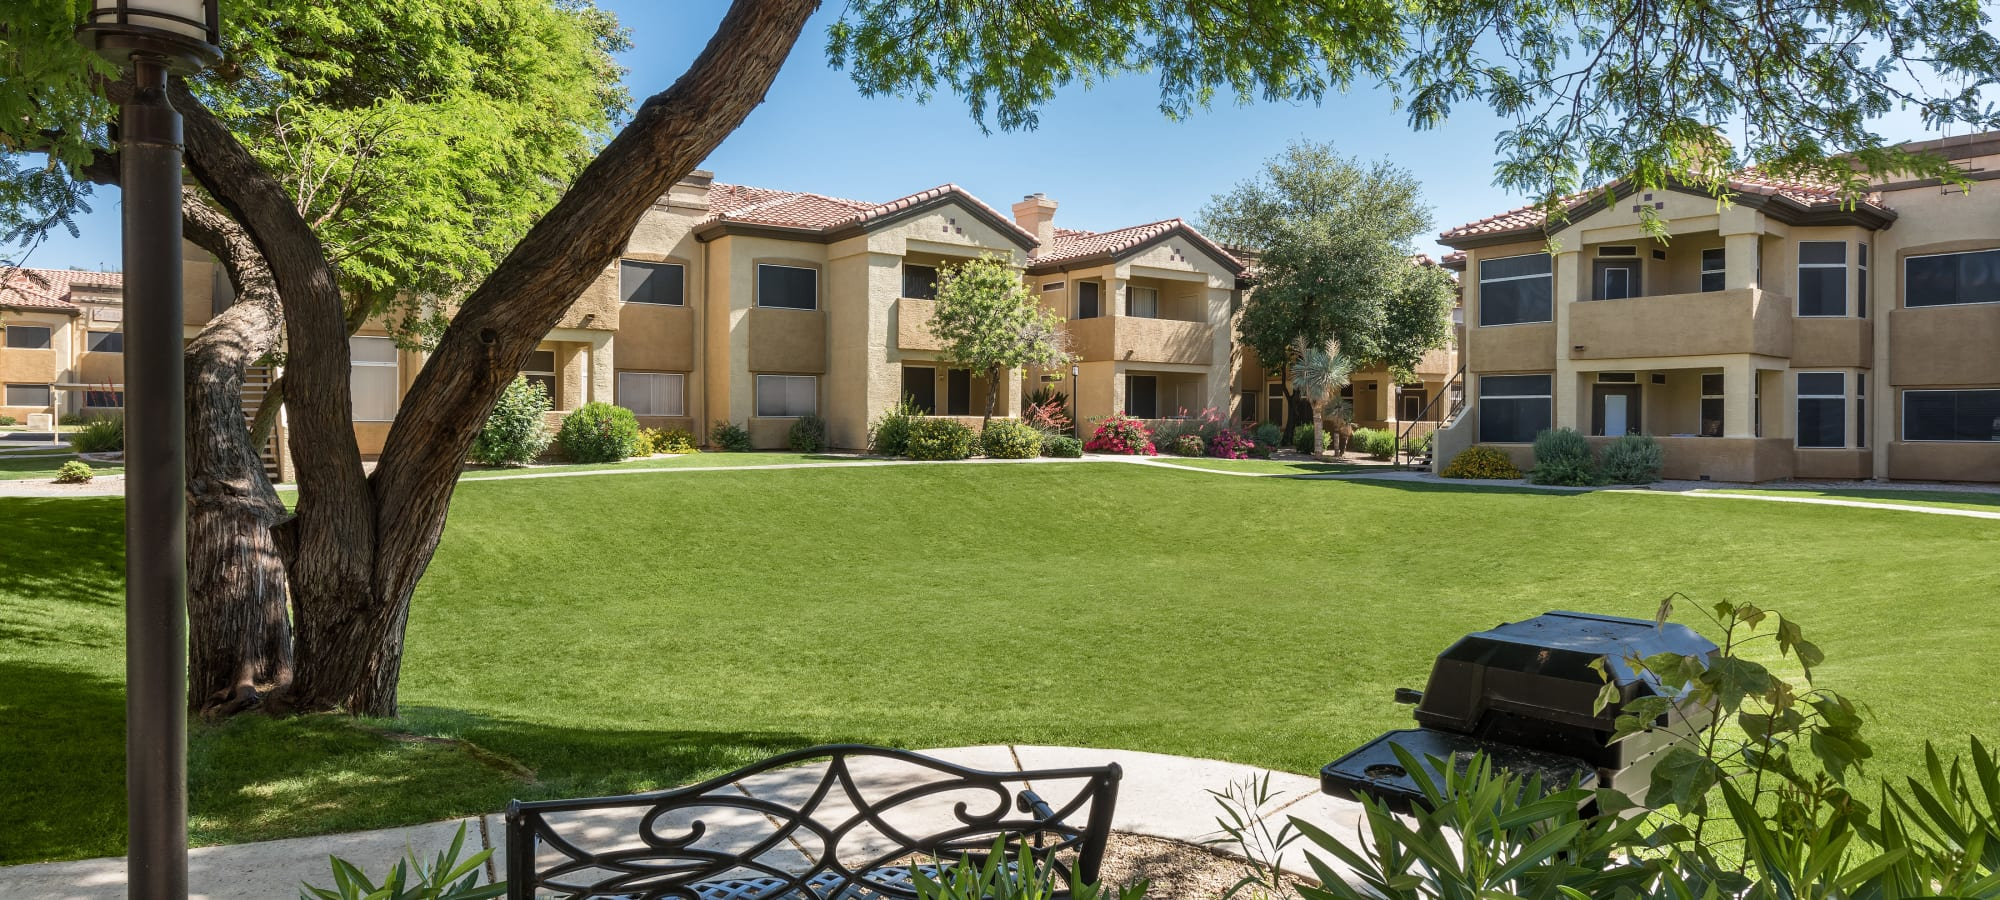 Outdoor picnic area with grill at Bellagio in Scottsdale, Arizona